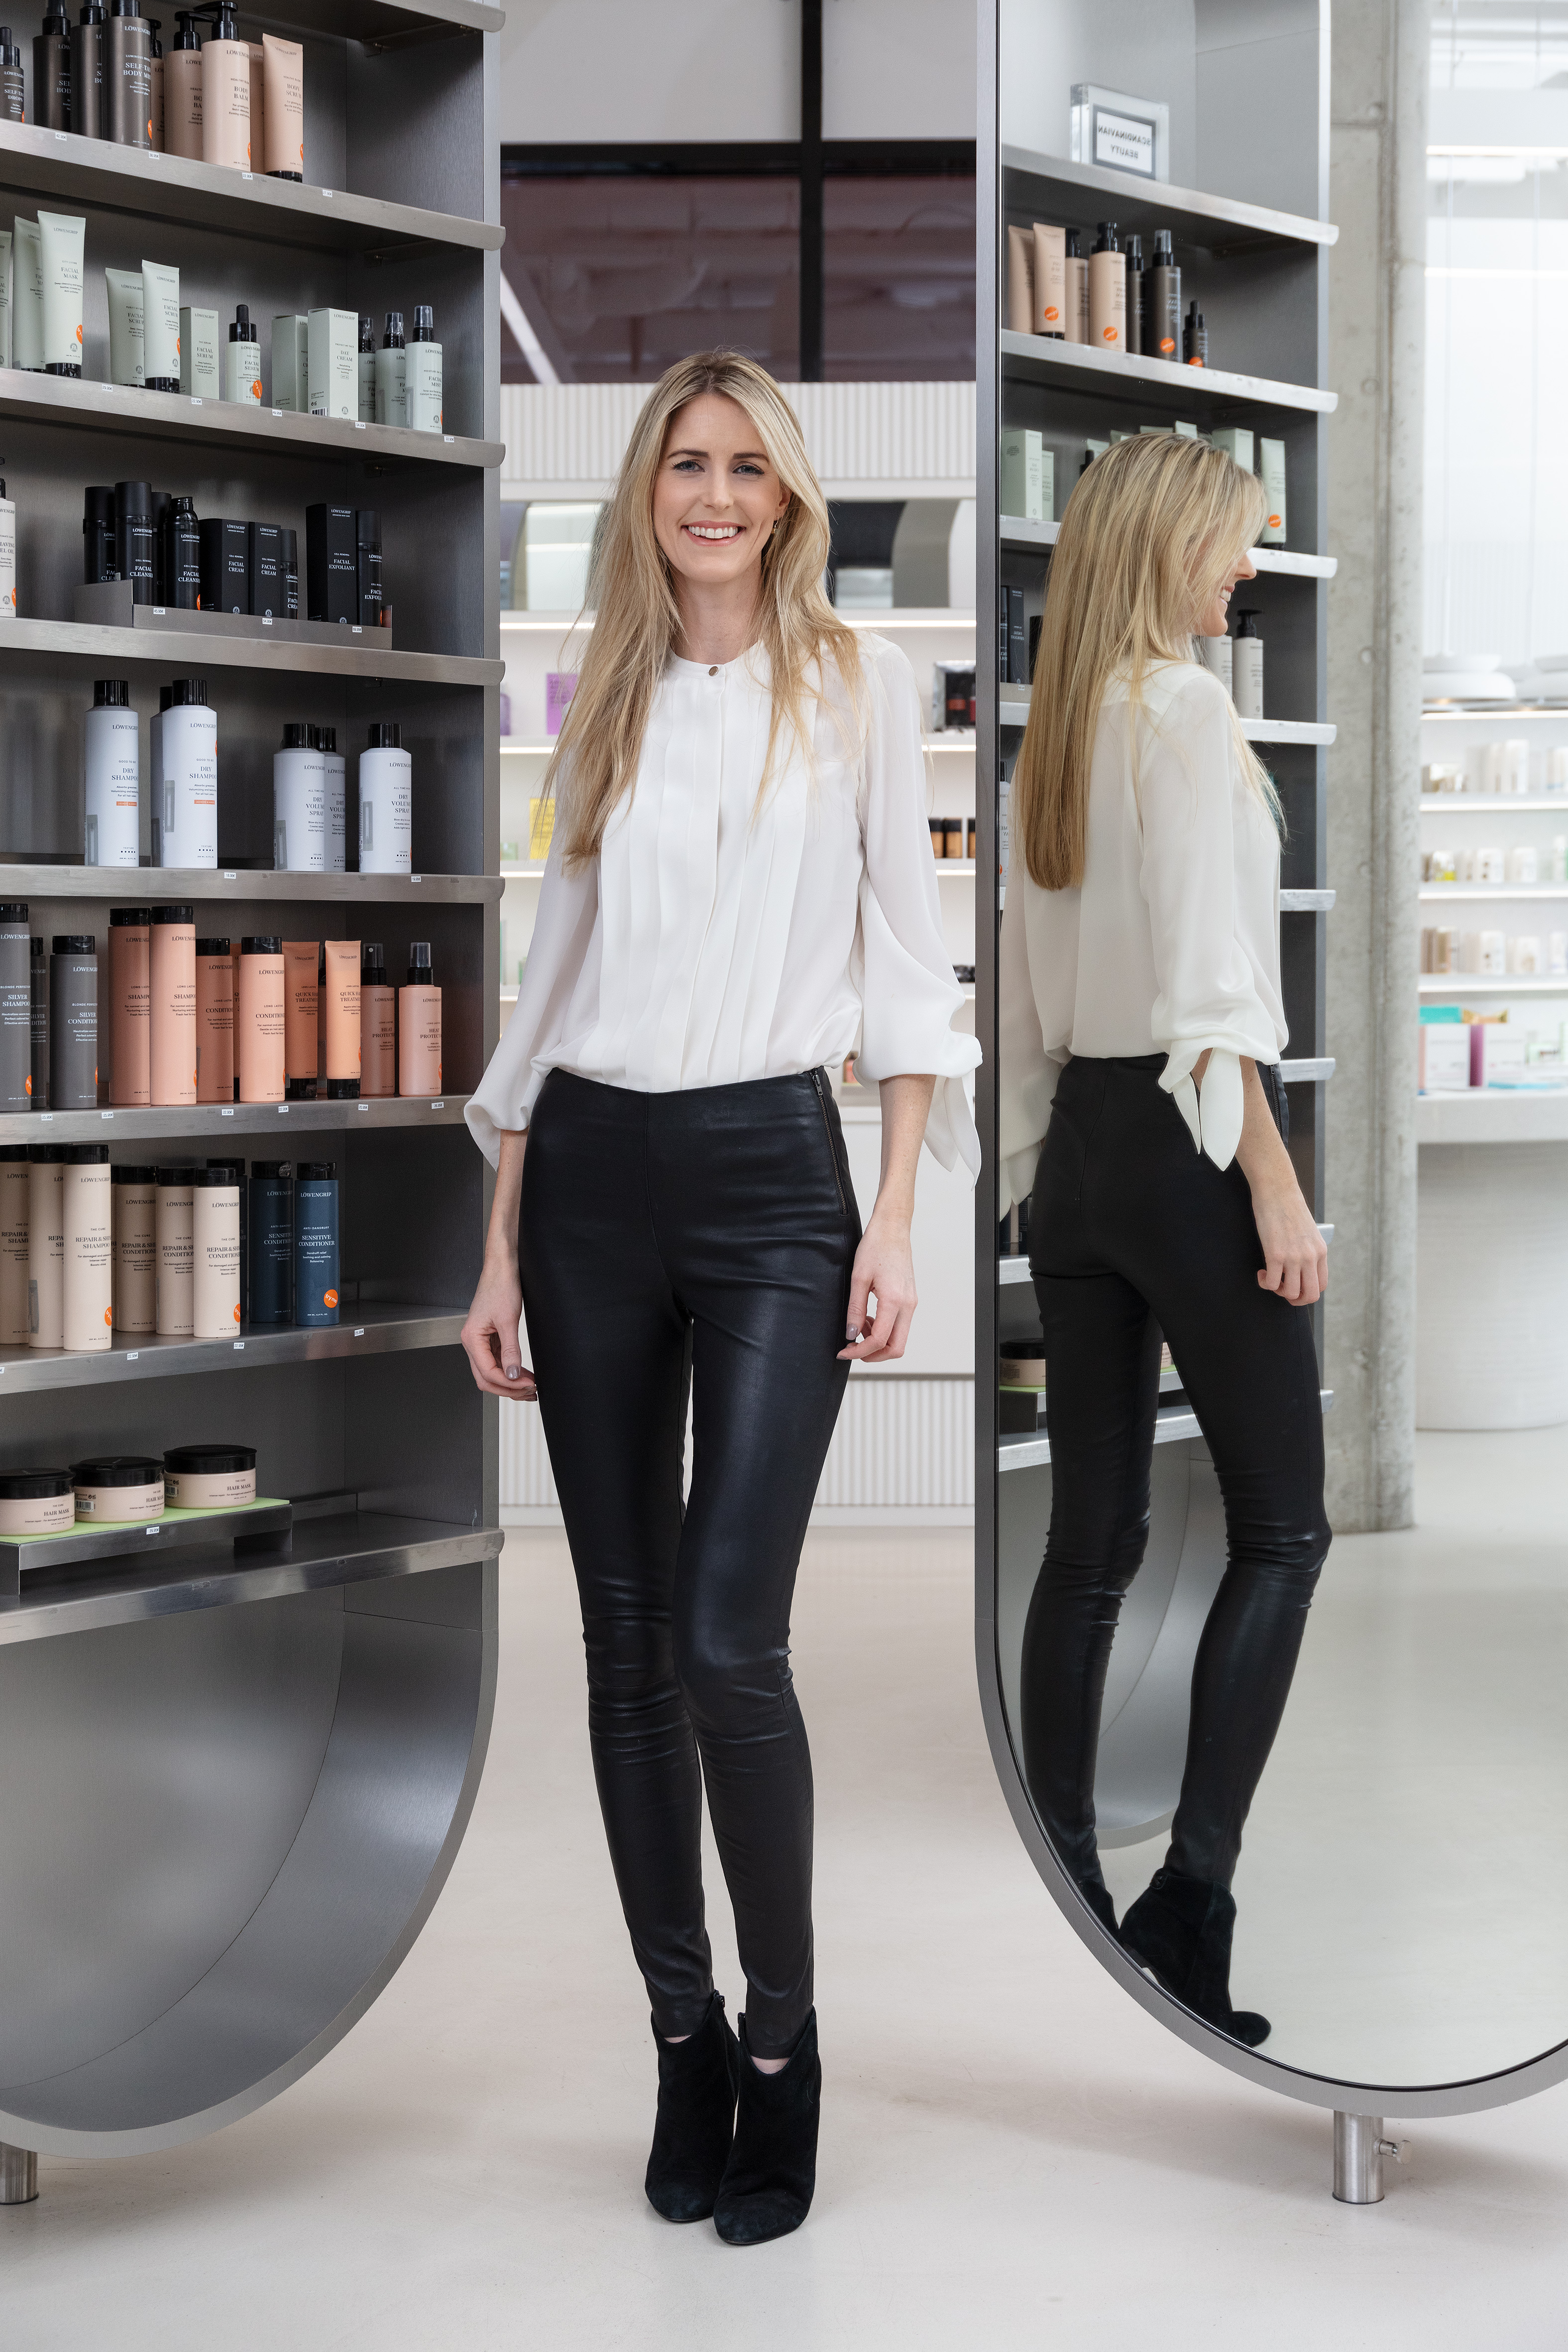 Zalando SE Press Release Beauty Expansion Pamela Wade-Lehman hoch